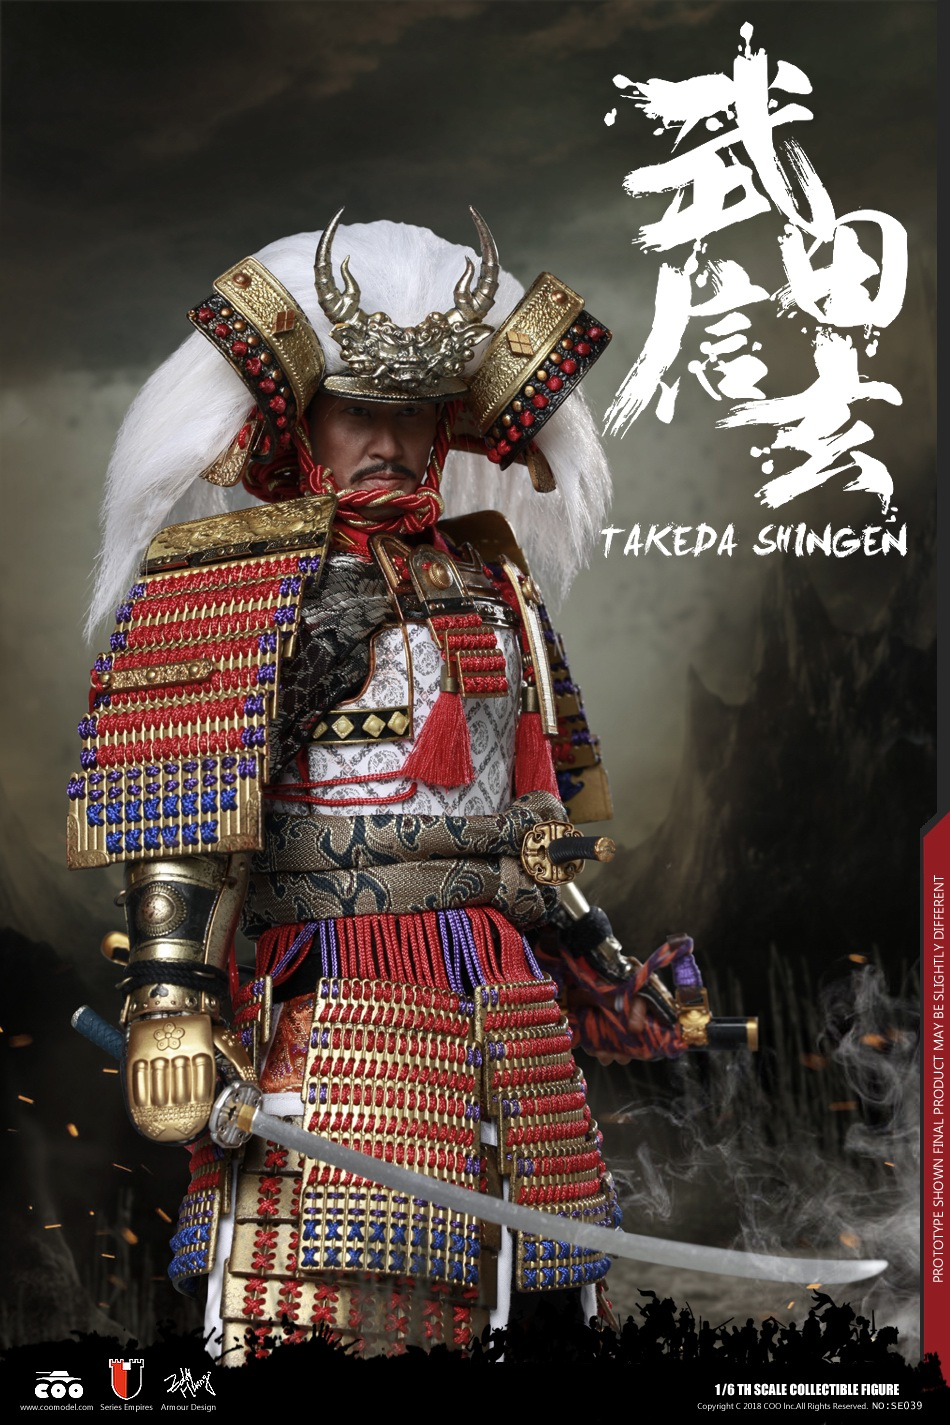 NEW PRODUCT: COOMODEL New: Empire Series Takeda Shingen 183753a9m6ps9mob97em7m